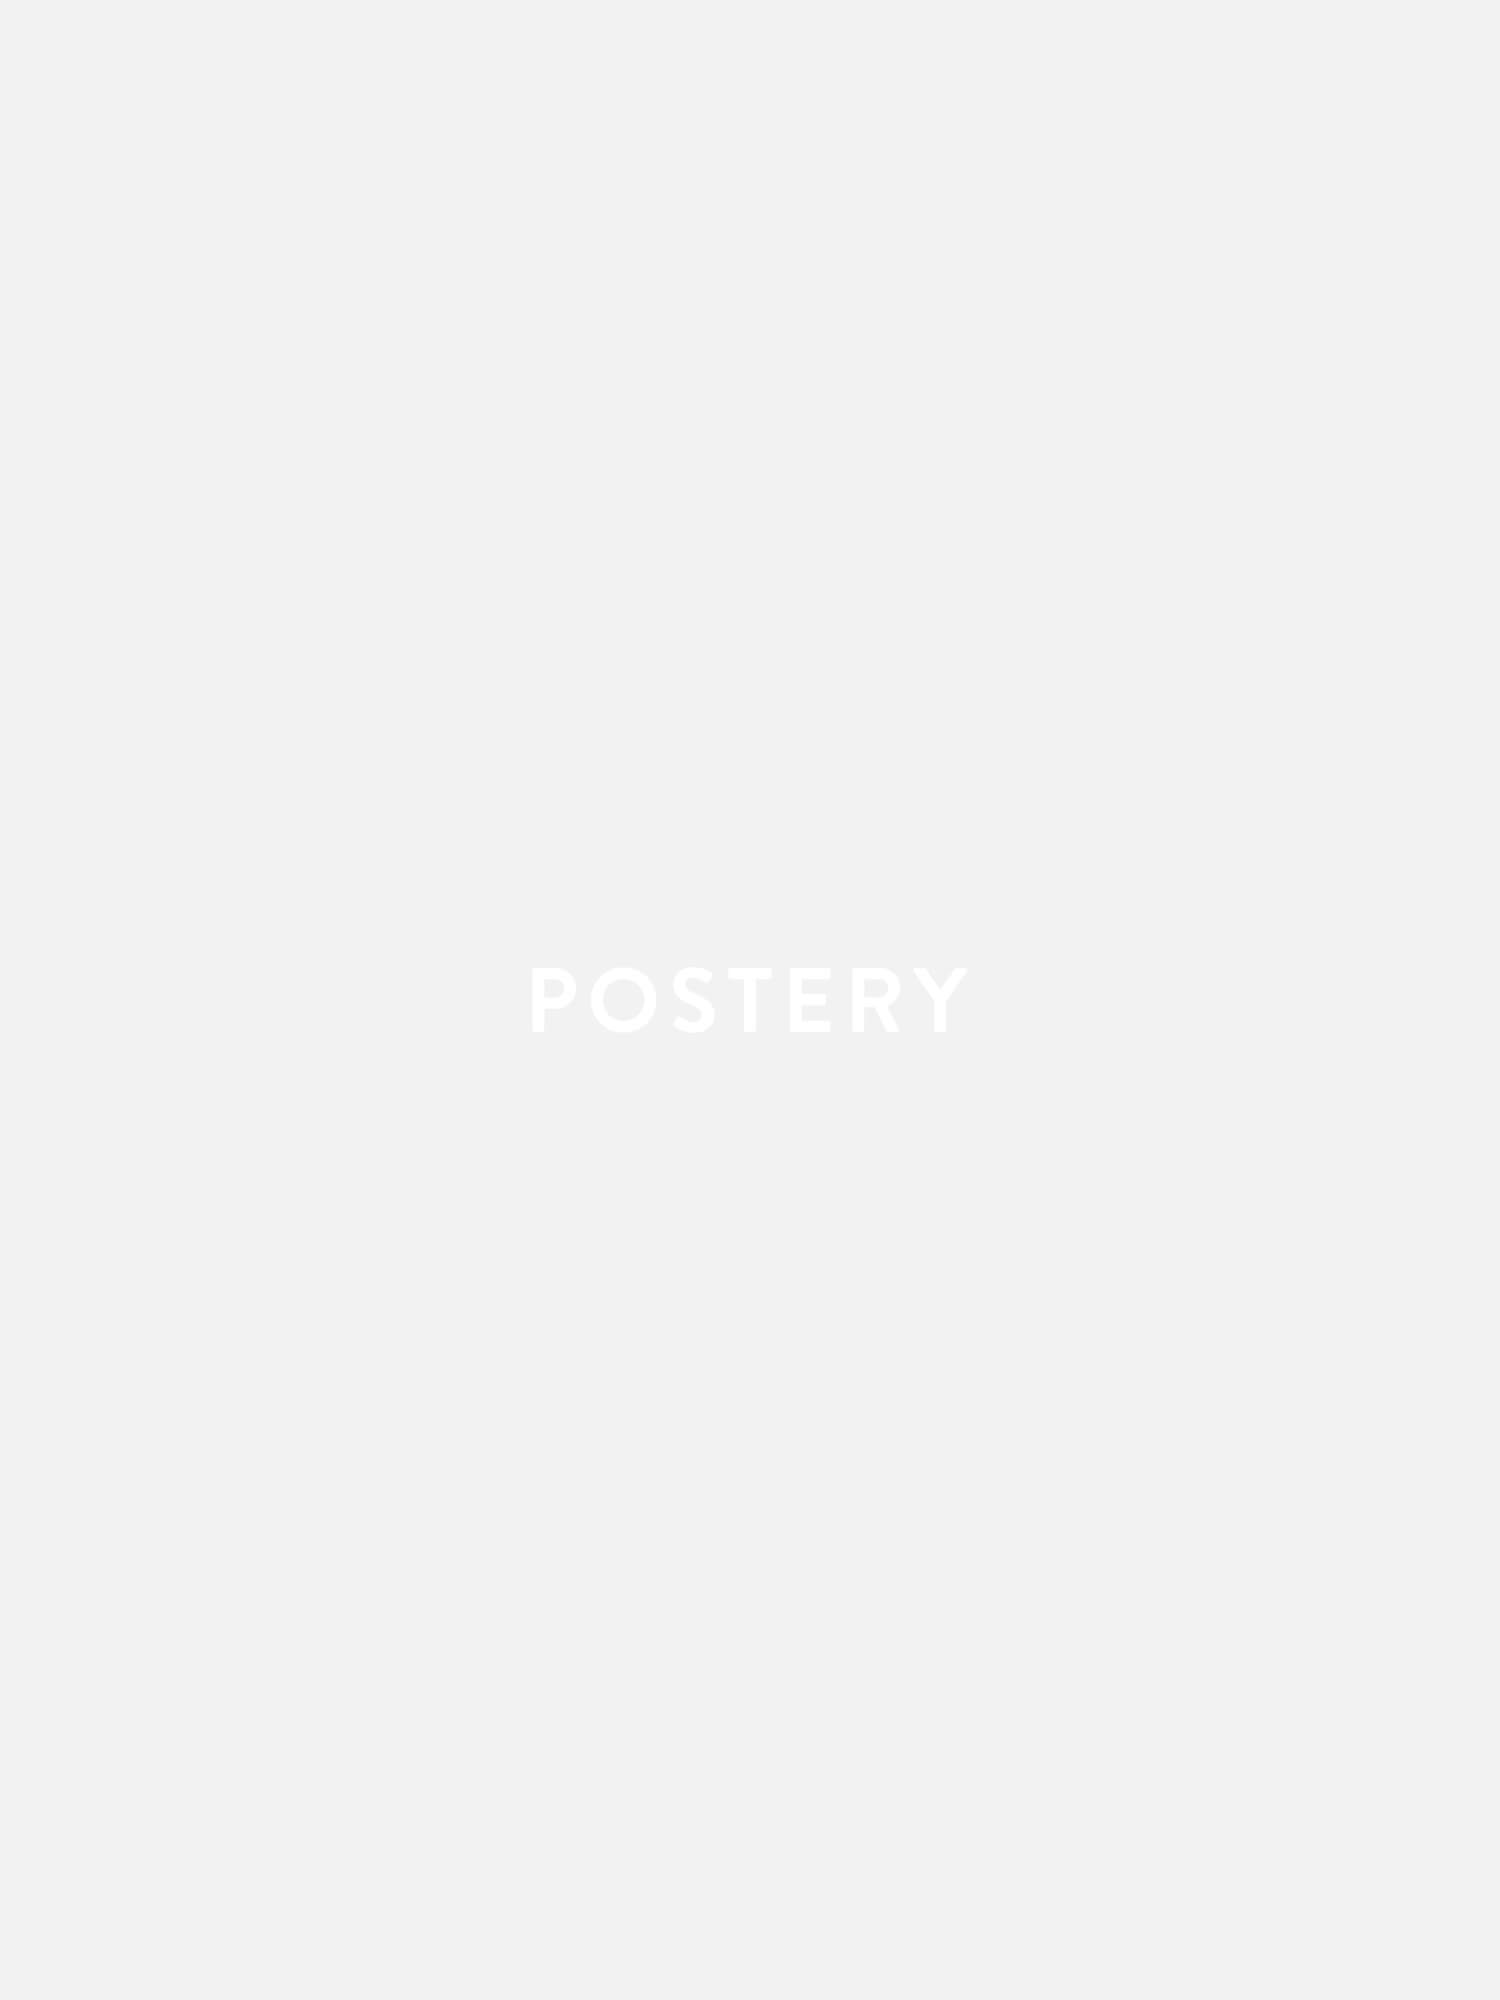 Retro Flower no.1 Poster